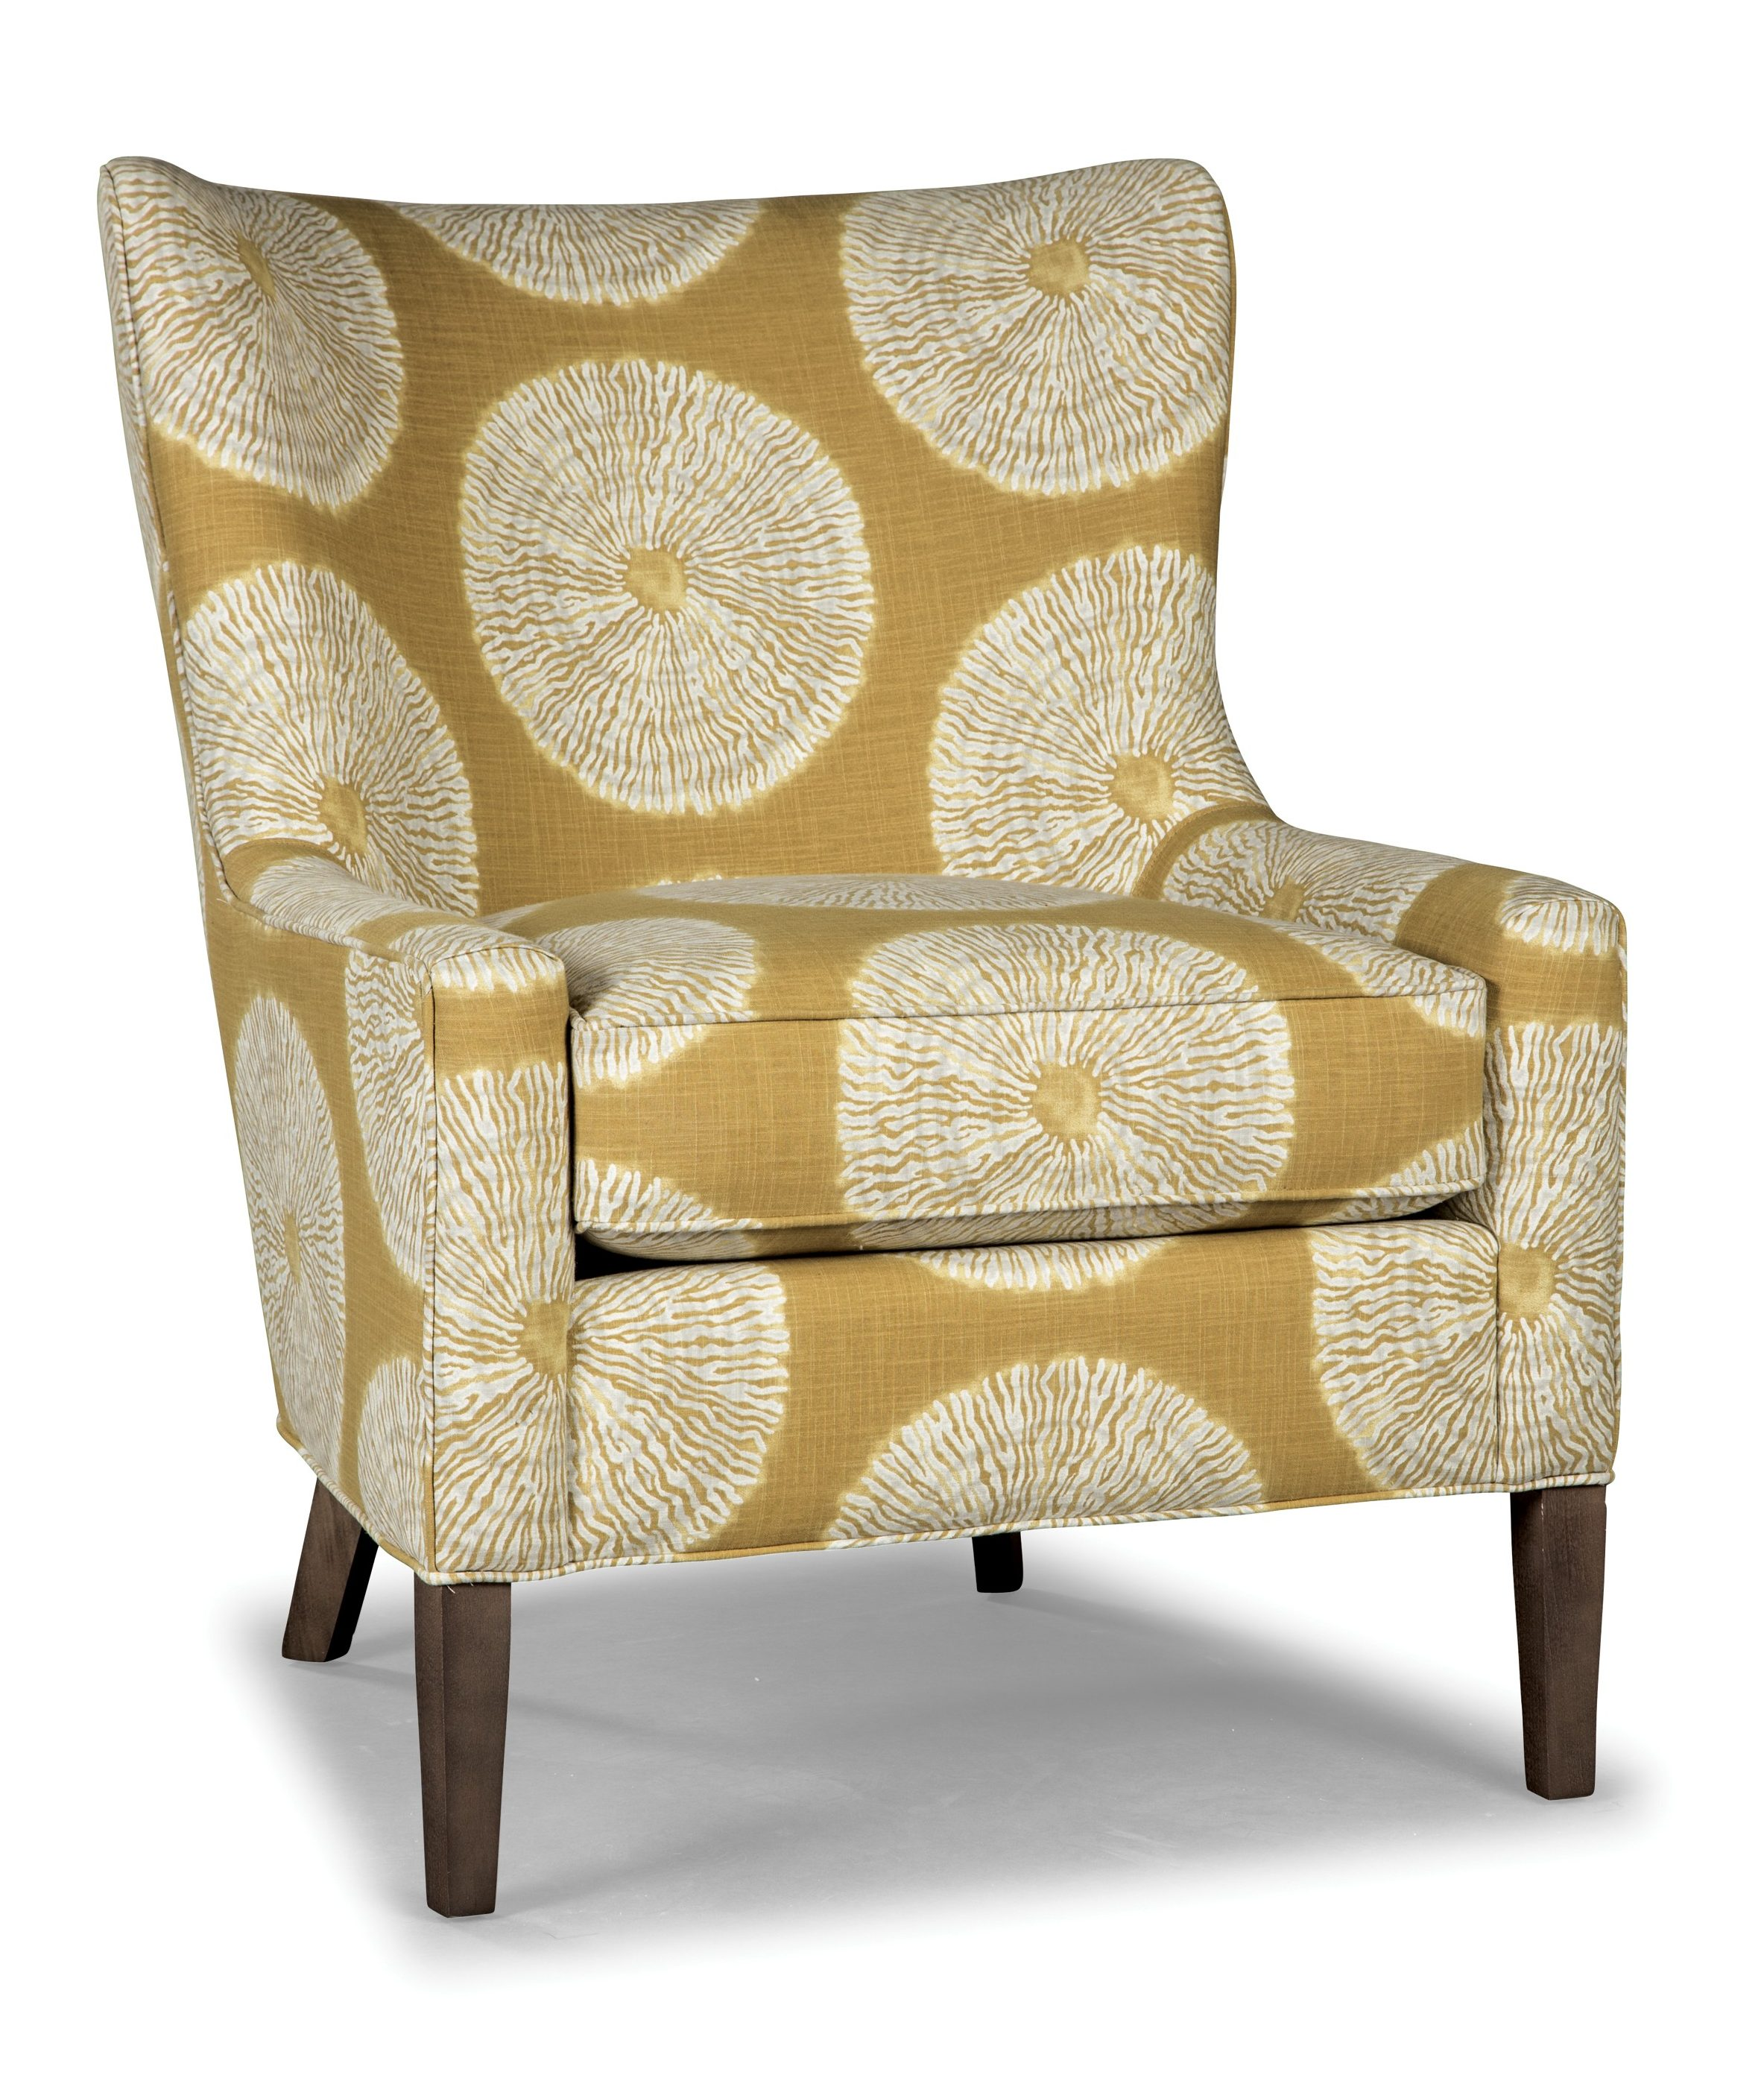 CURVED BACK ACCENT CHAIR (SOHO)